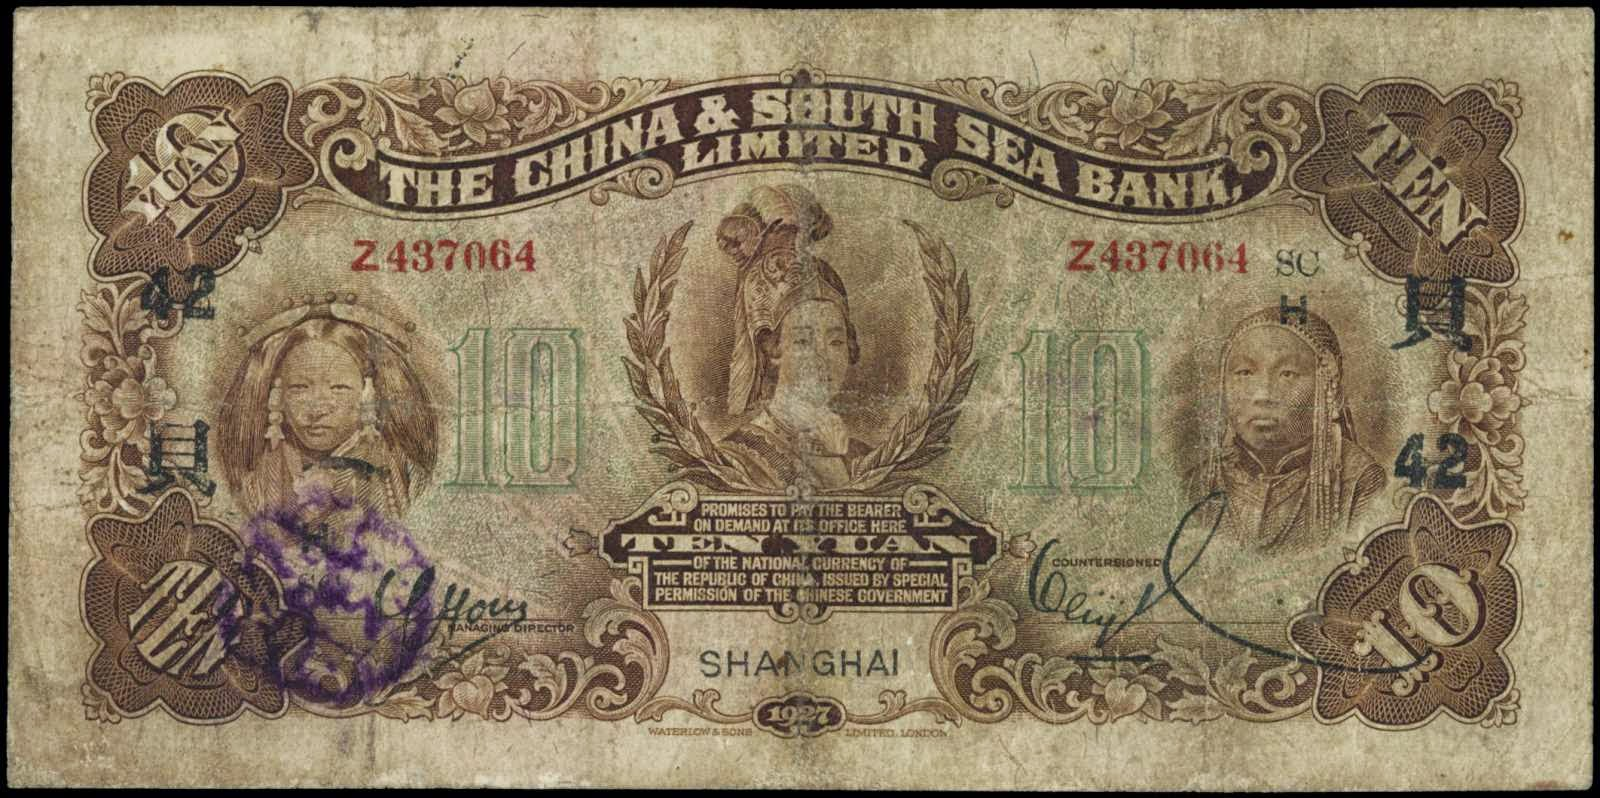 Chinese Paper Money Currency 10 Yuan 1927 China and South Sea Bank